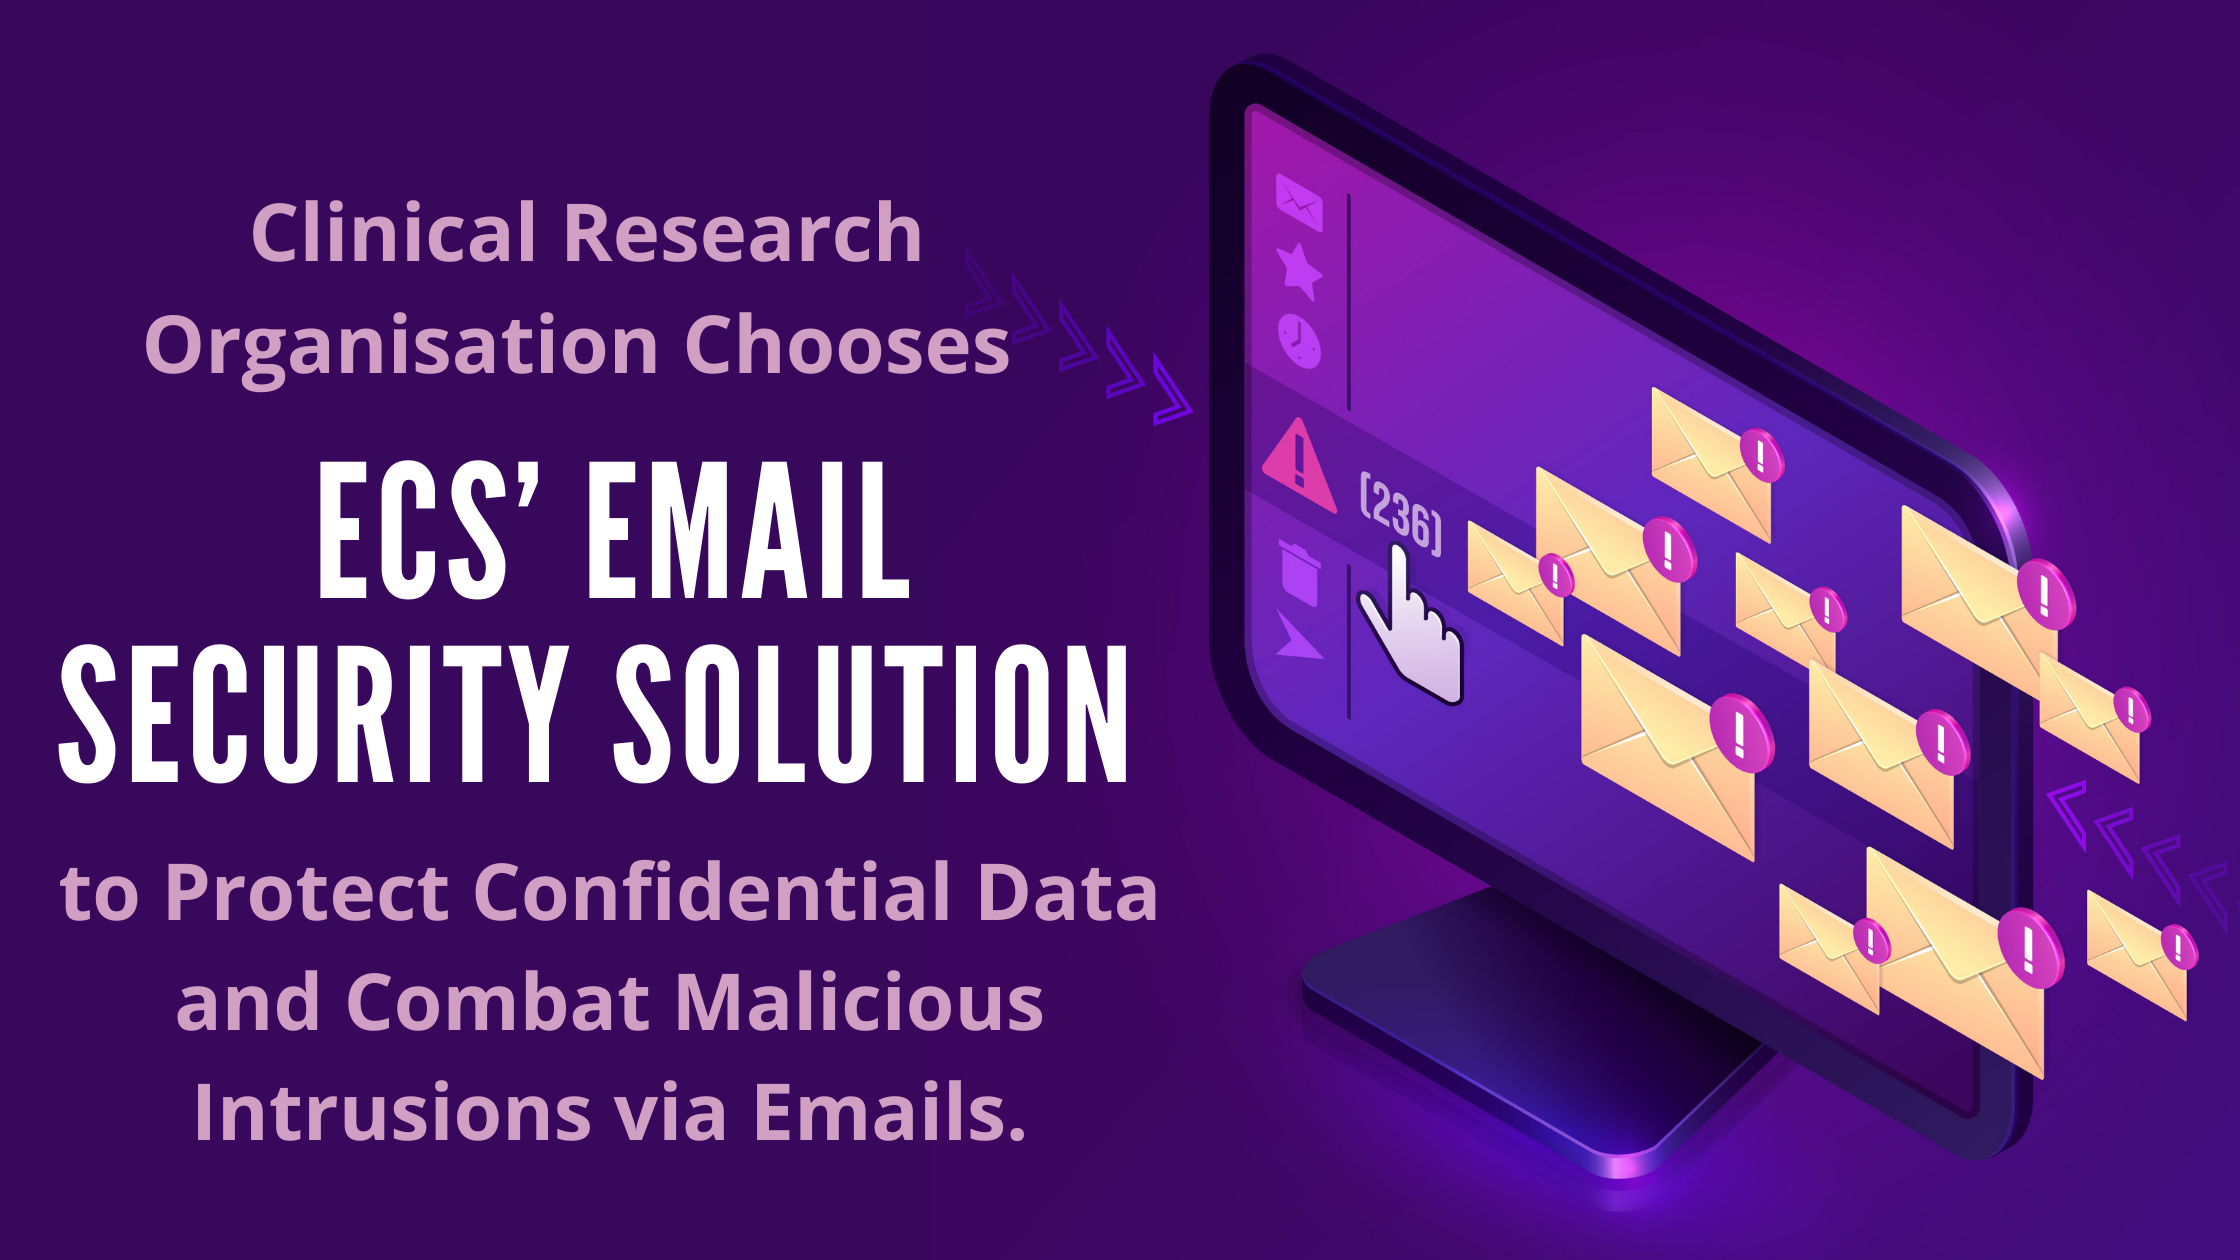 Email security solution